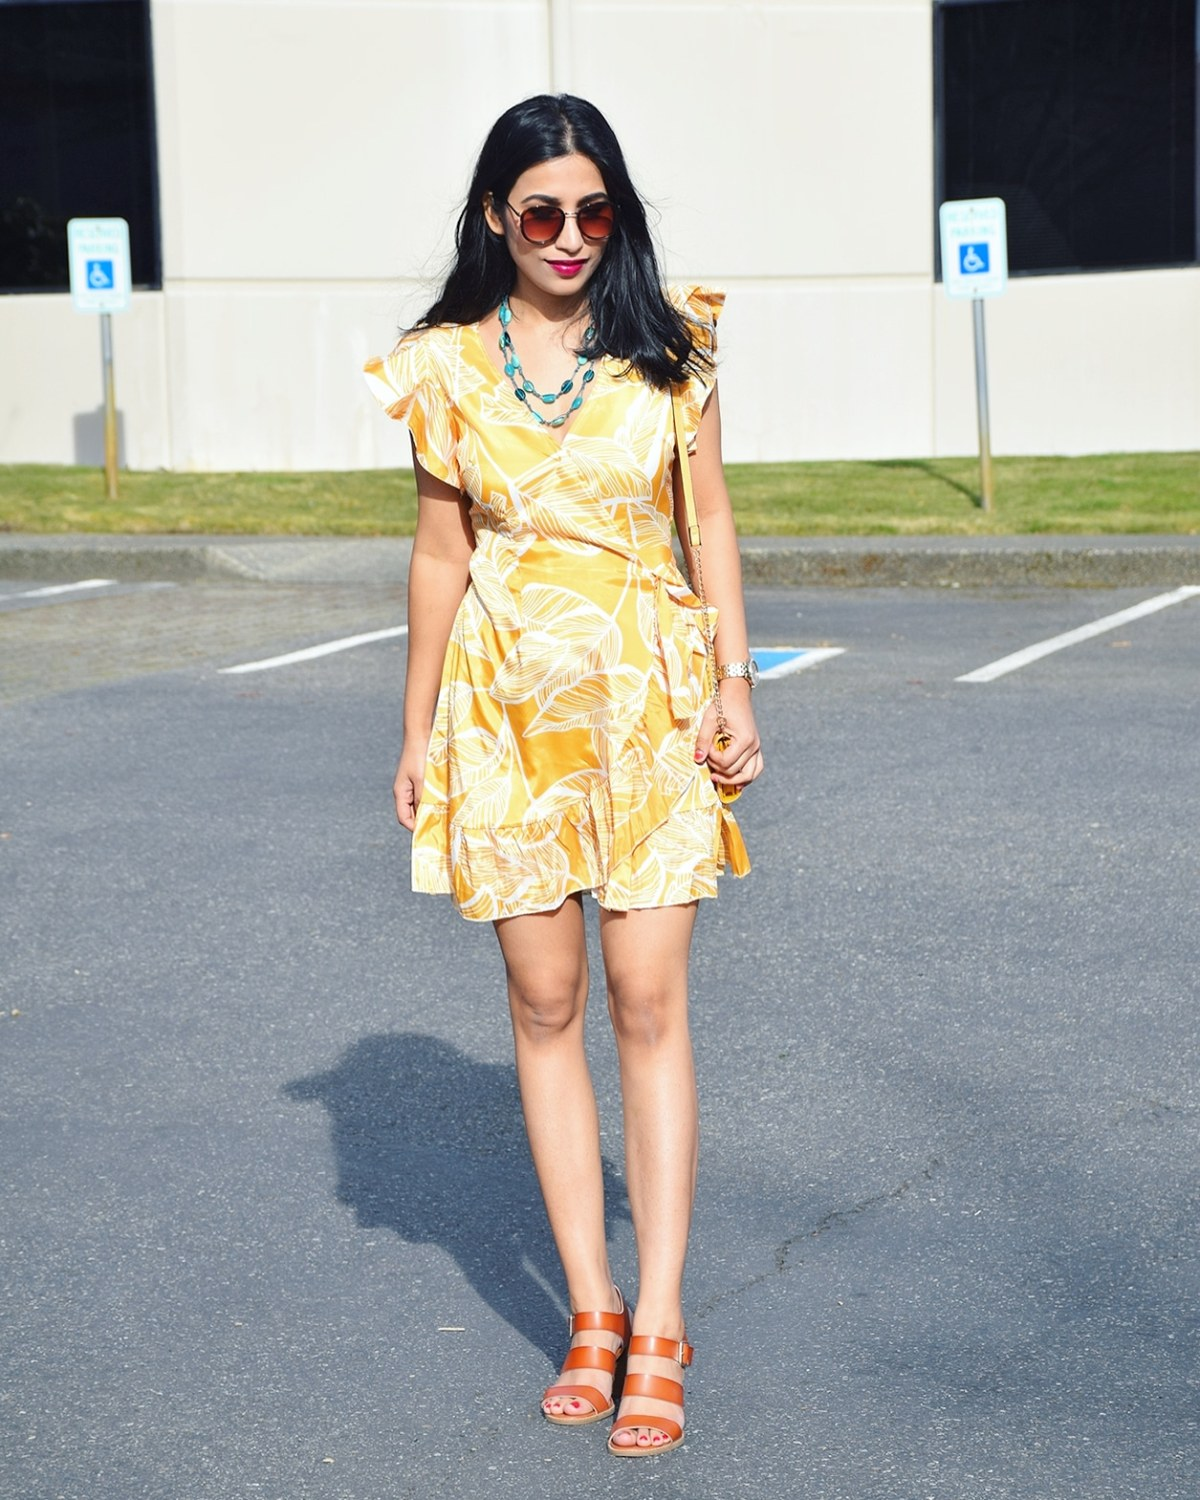 https://www.dropship-clothes.com/Mustard-Leaf-Vein-Print-Ruffle-and-Wrap-Short-Summer-Dress-p499924.html